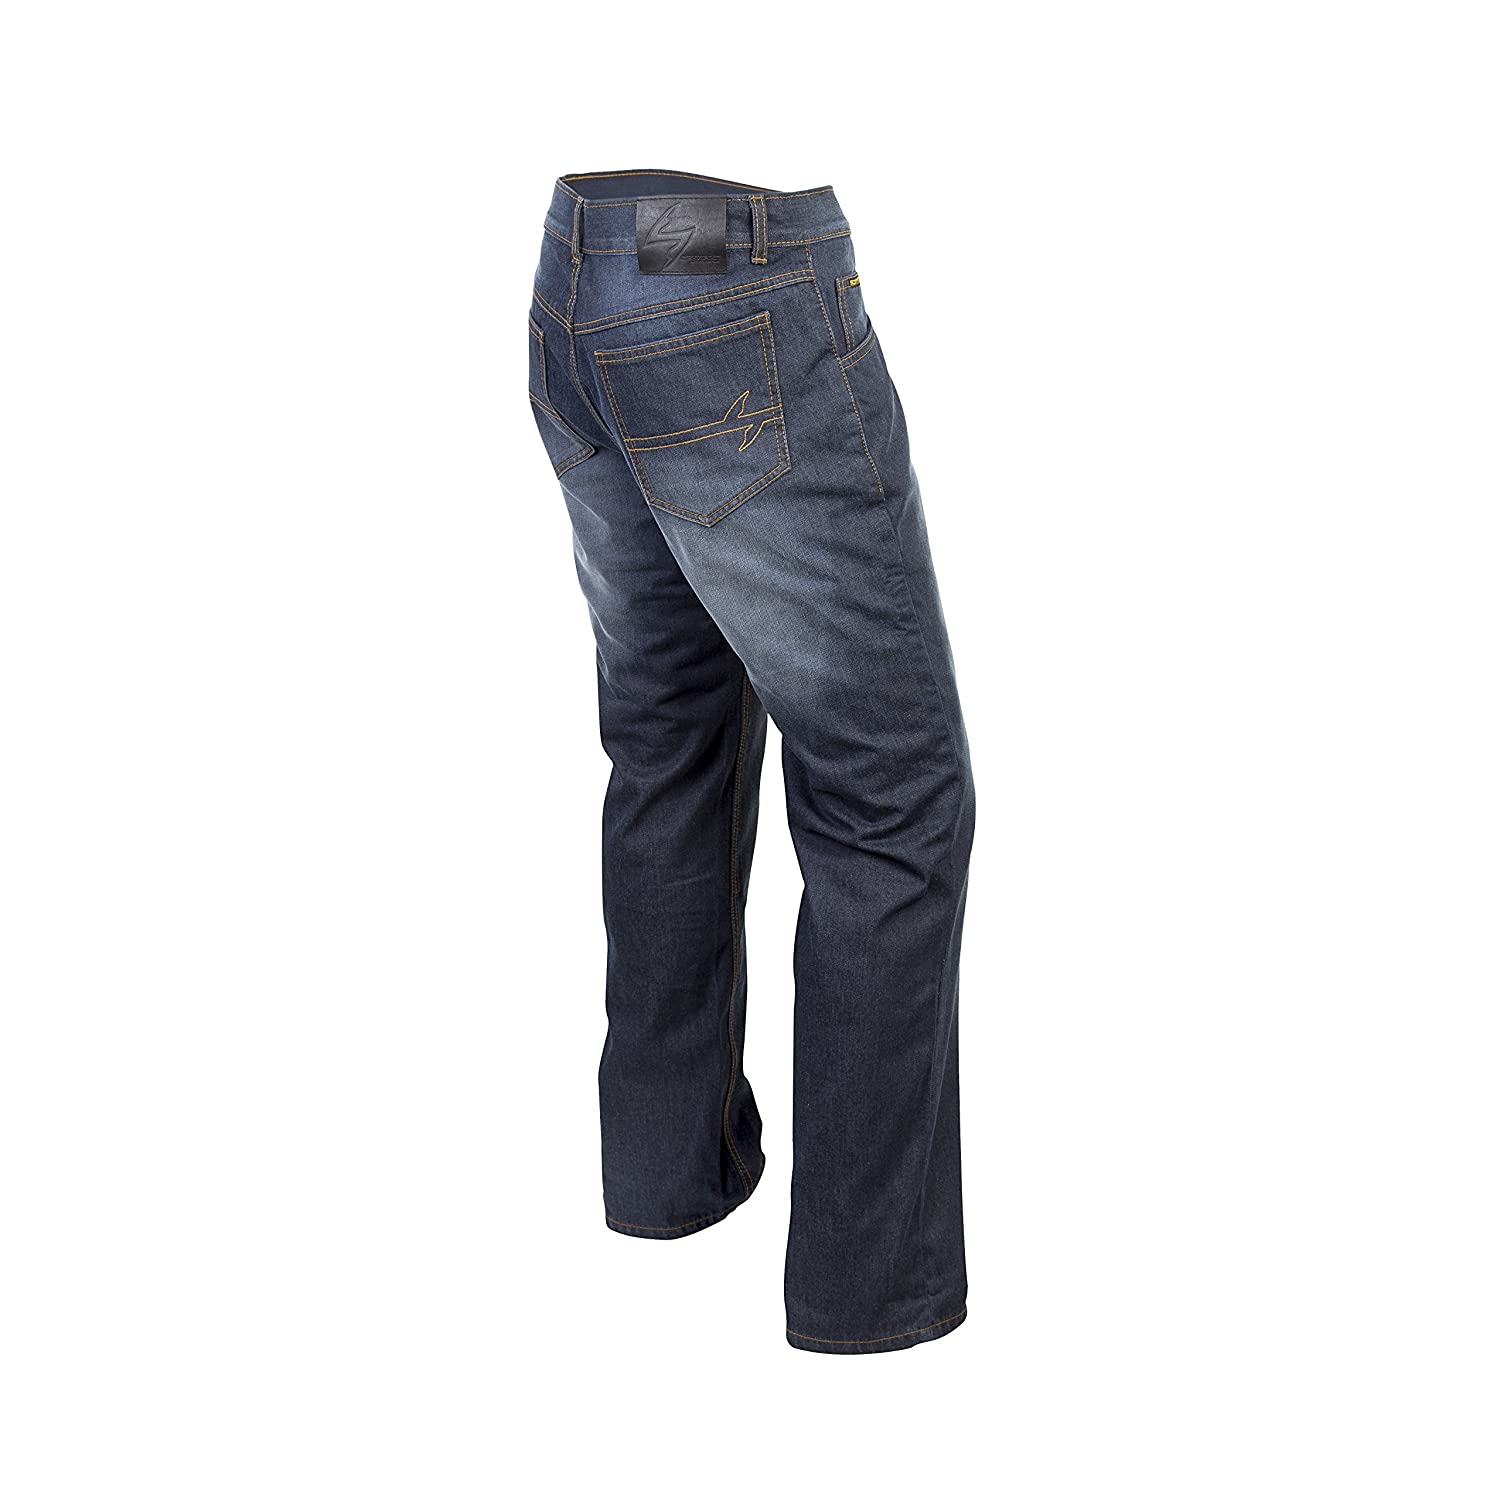 ScorpionExo Covert Pro Jeans Mens Reinforced Motorcycle Pants Wash, Size 38